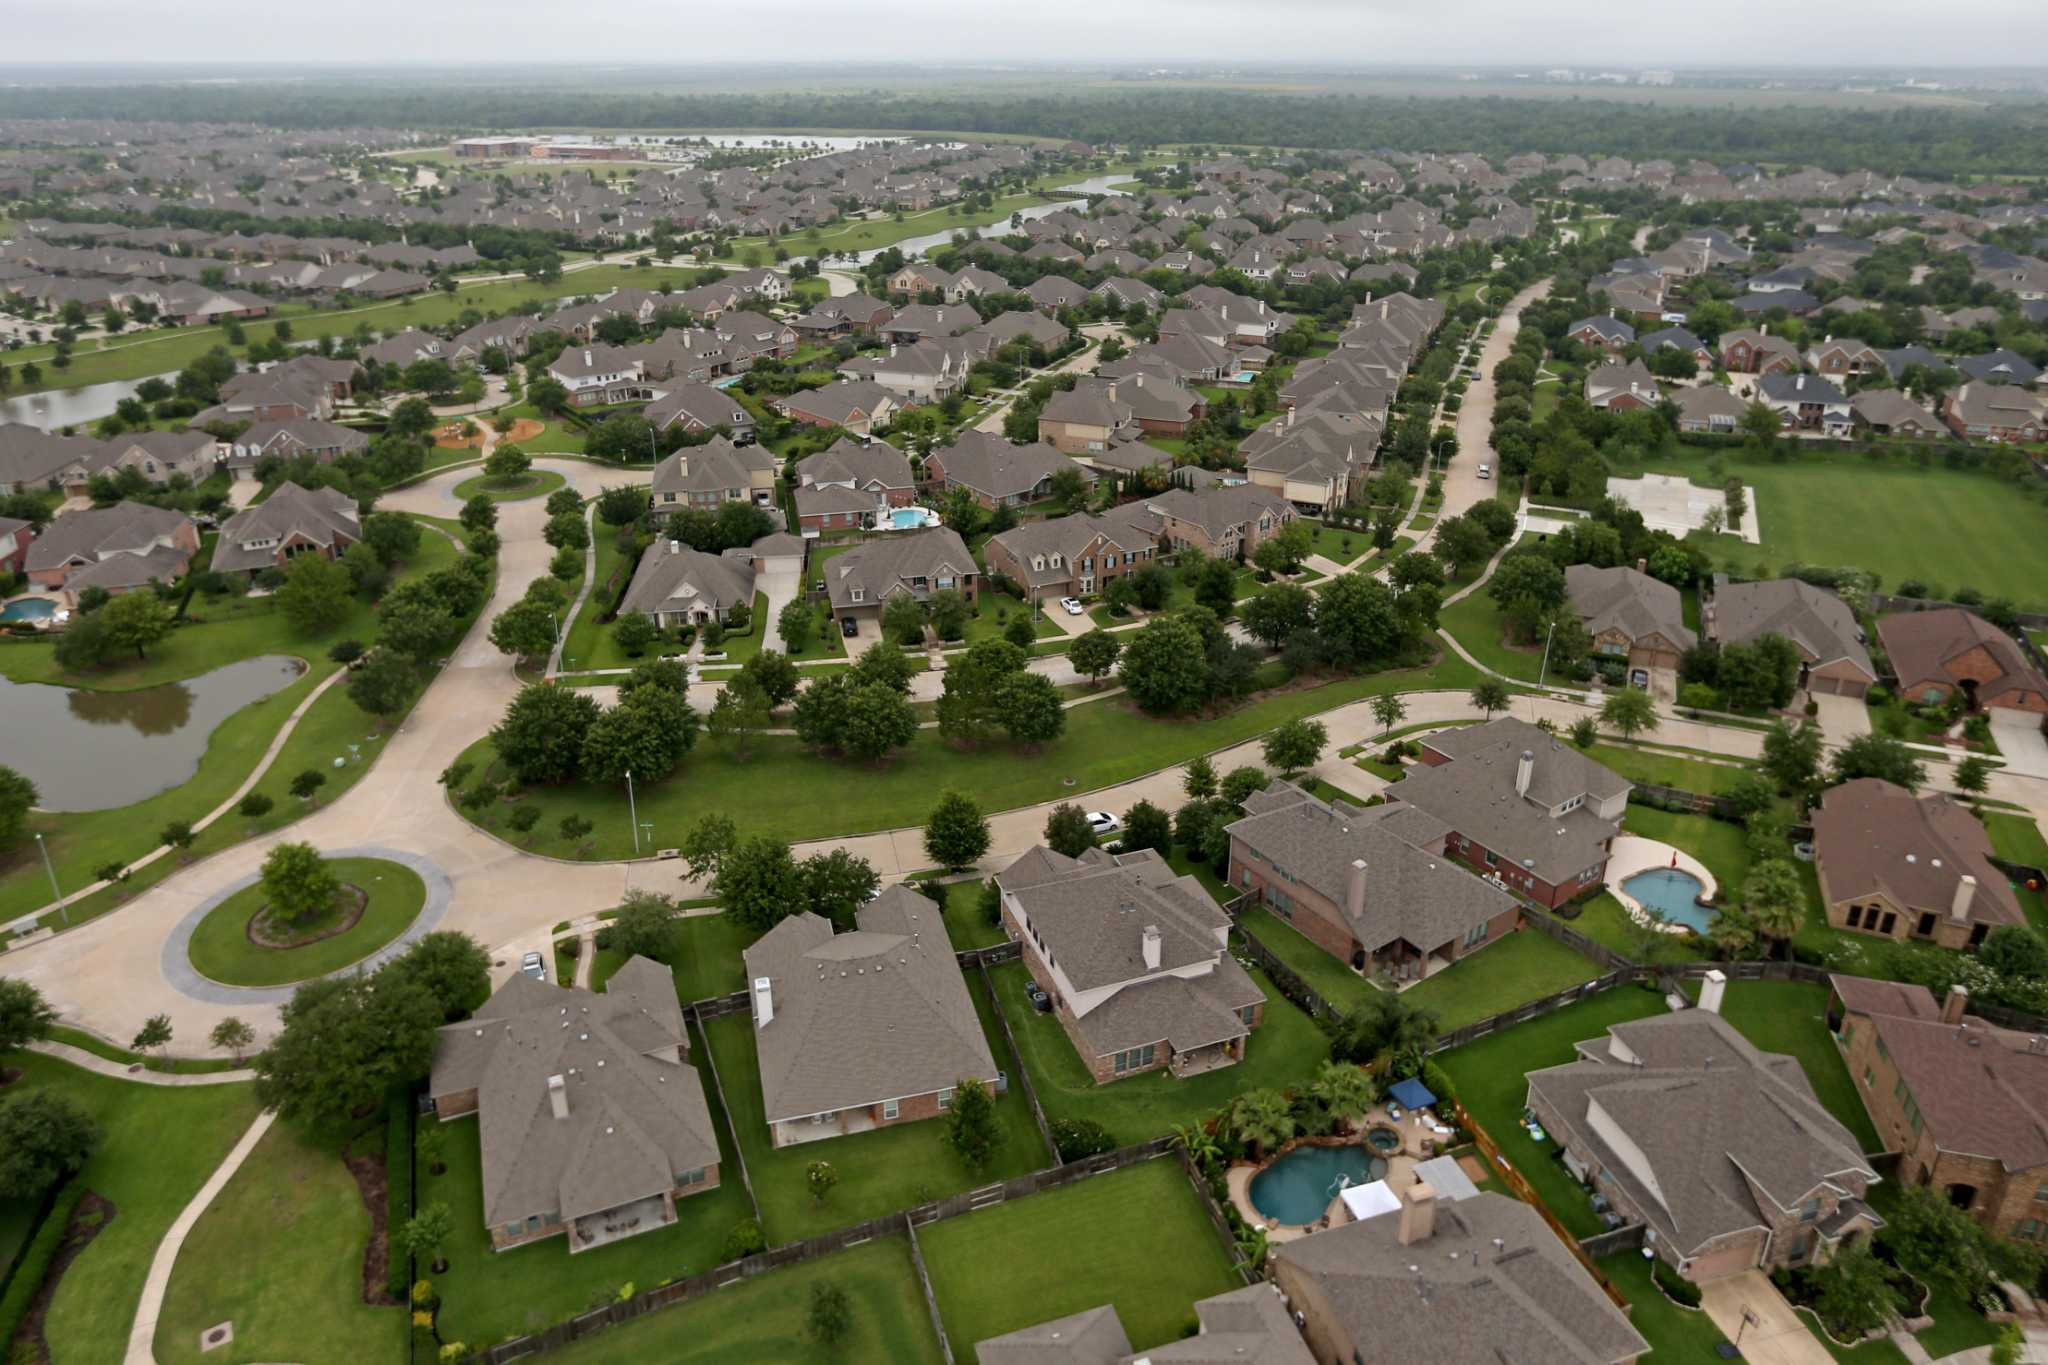 Real estate startup Side launches in Houston